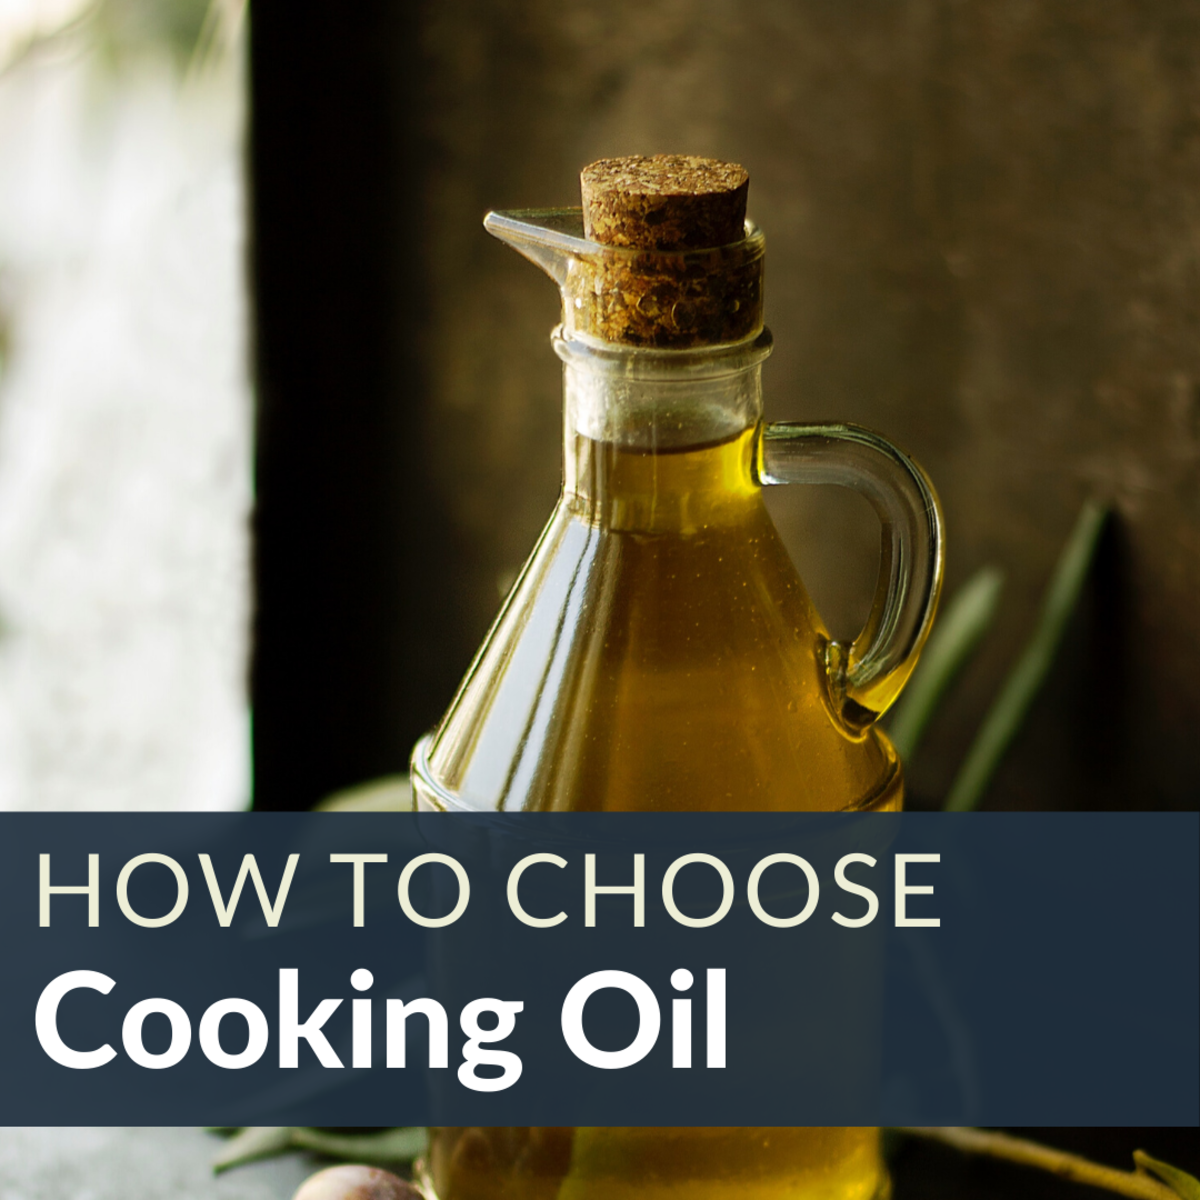 How to Choose Healthy and Tasty Cooking Oils